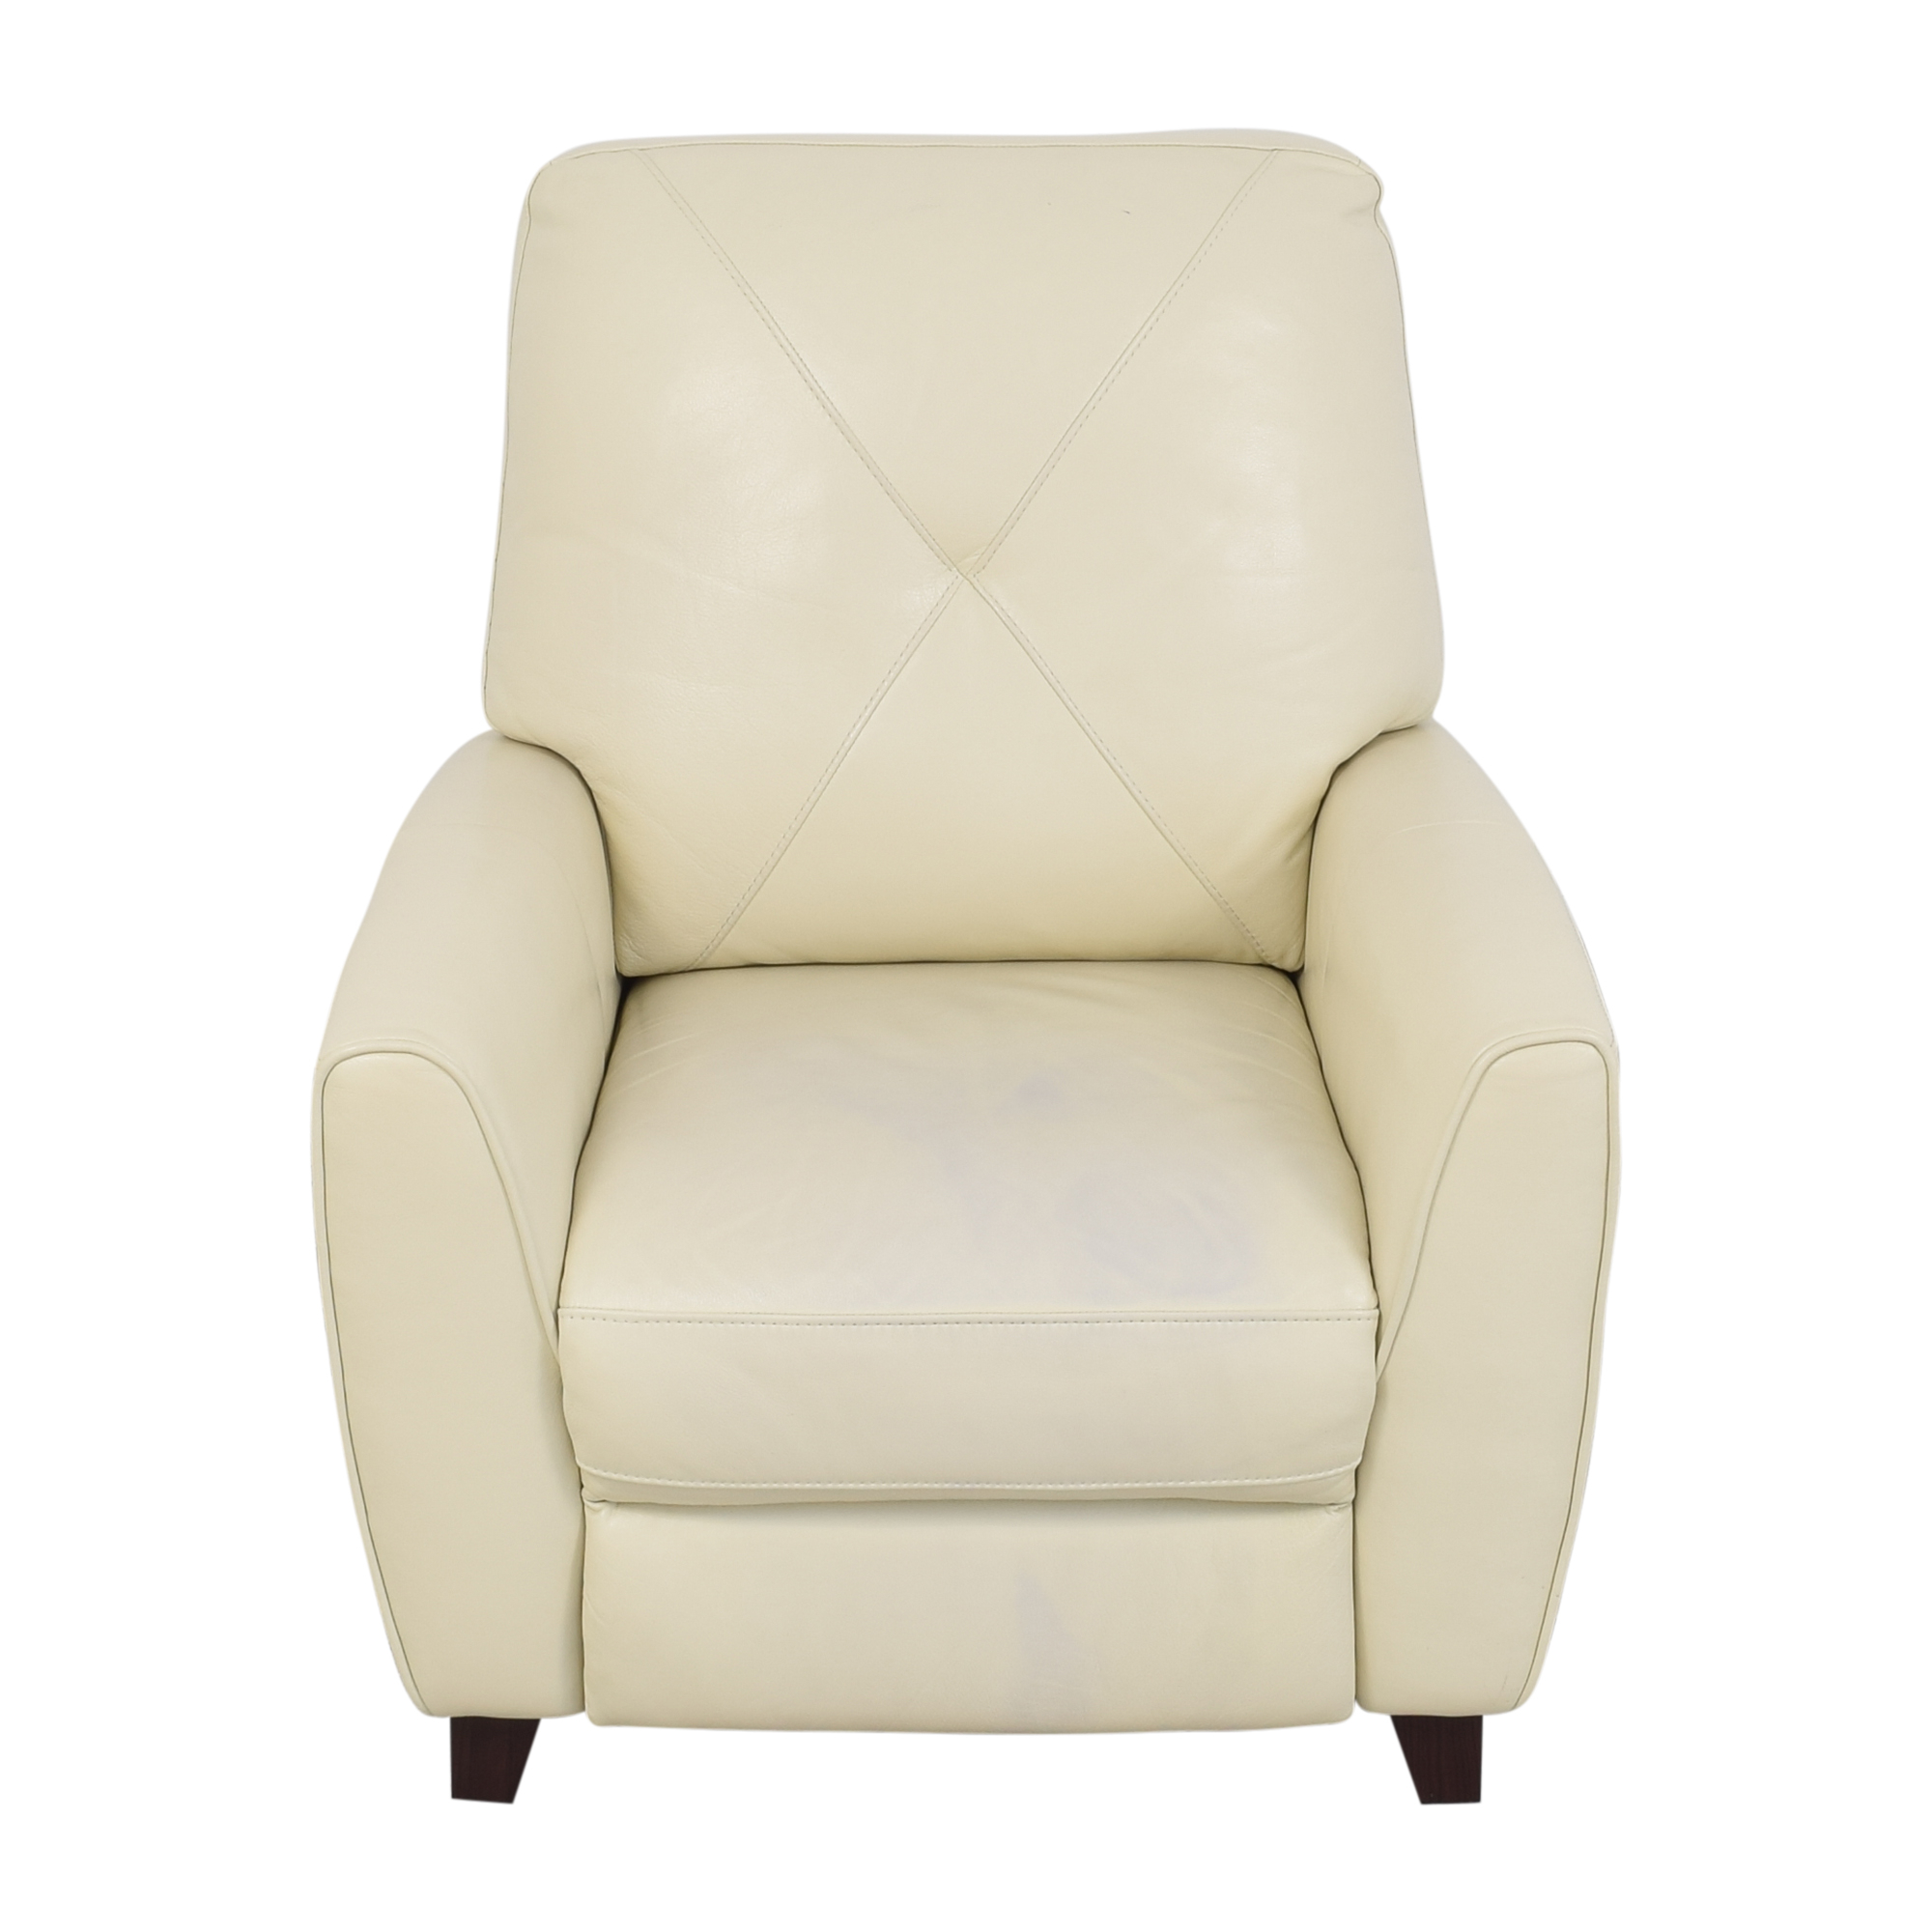 [%84% Off – Macy's Macy's Myia Pushback Reclining Chair / Chairs With Regard To Most Recently Released Myia Armchairs|myia Armchairs Within 2020 84% Off – Macy's Macy's Myia Pushback Reclining Chair / Chairs|2020 Myia Armchairs Inside 84% Off – Macy's Macy's Myia Pushback Reclining Chair / Chairs|well Liked 84% Off – Macy's Macy's Myia Pushback Reclining Chair / Chairs With Regard To Myia Armchairs%] (View 5 of 20)